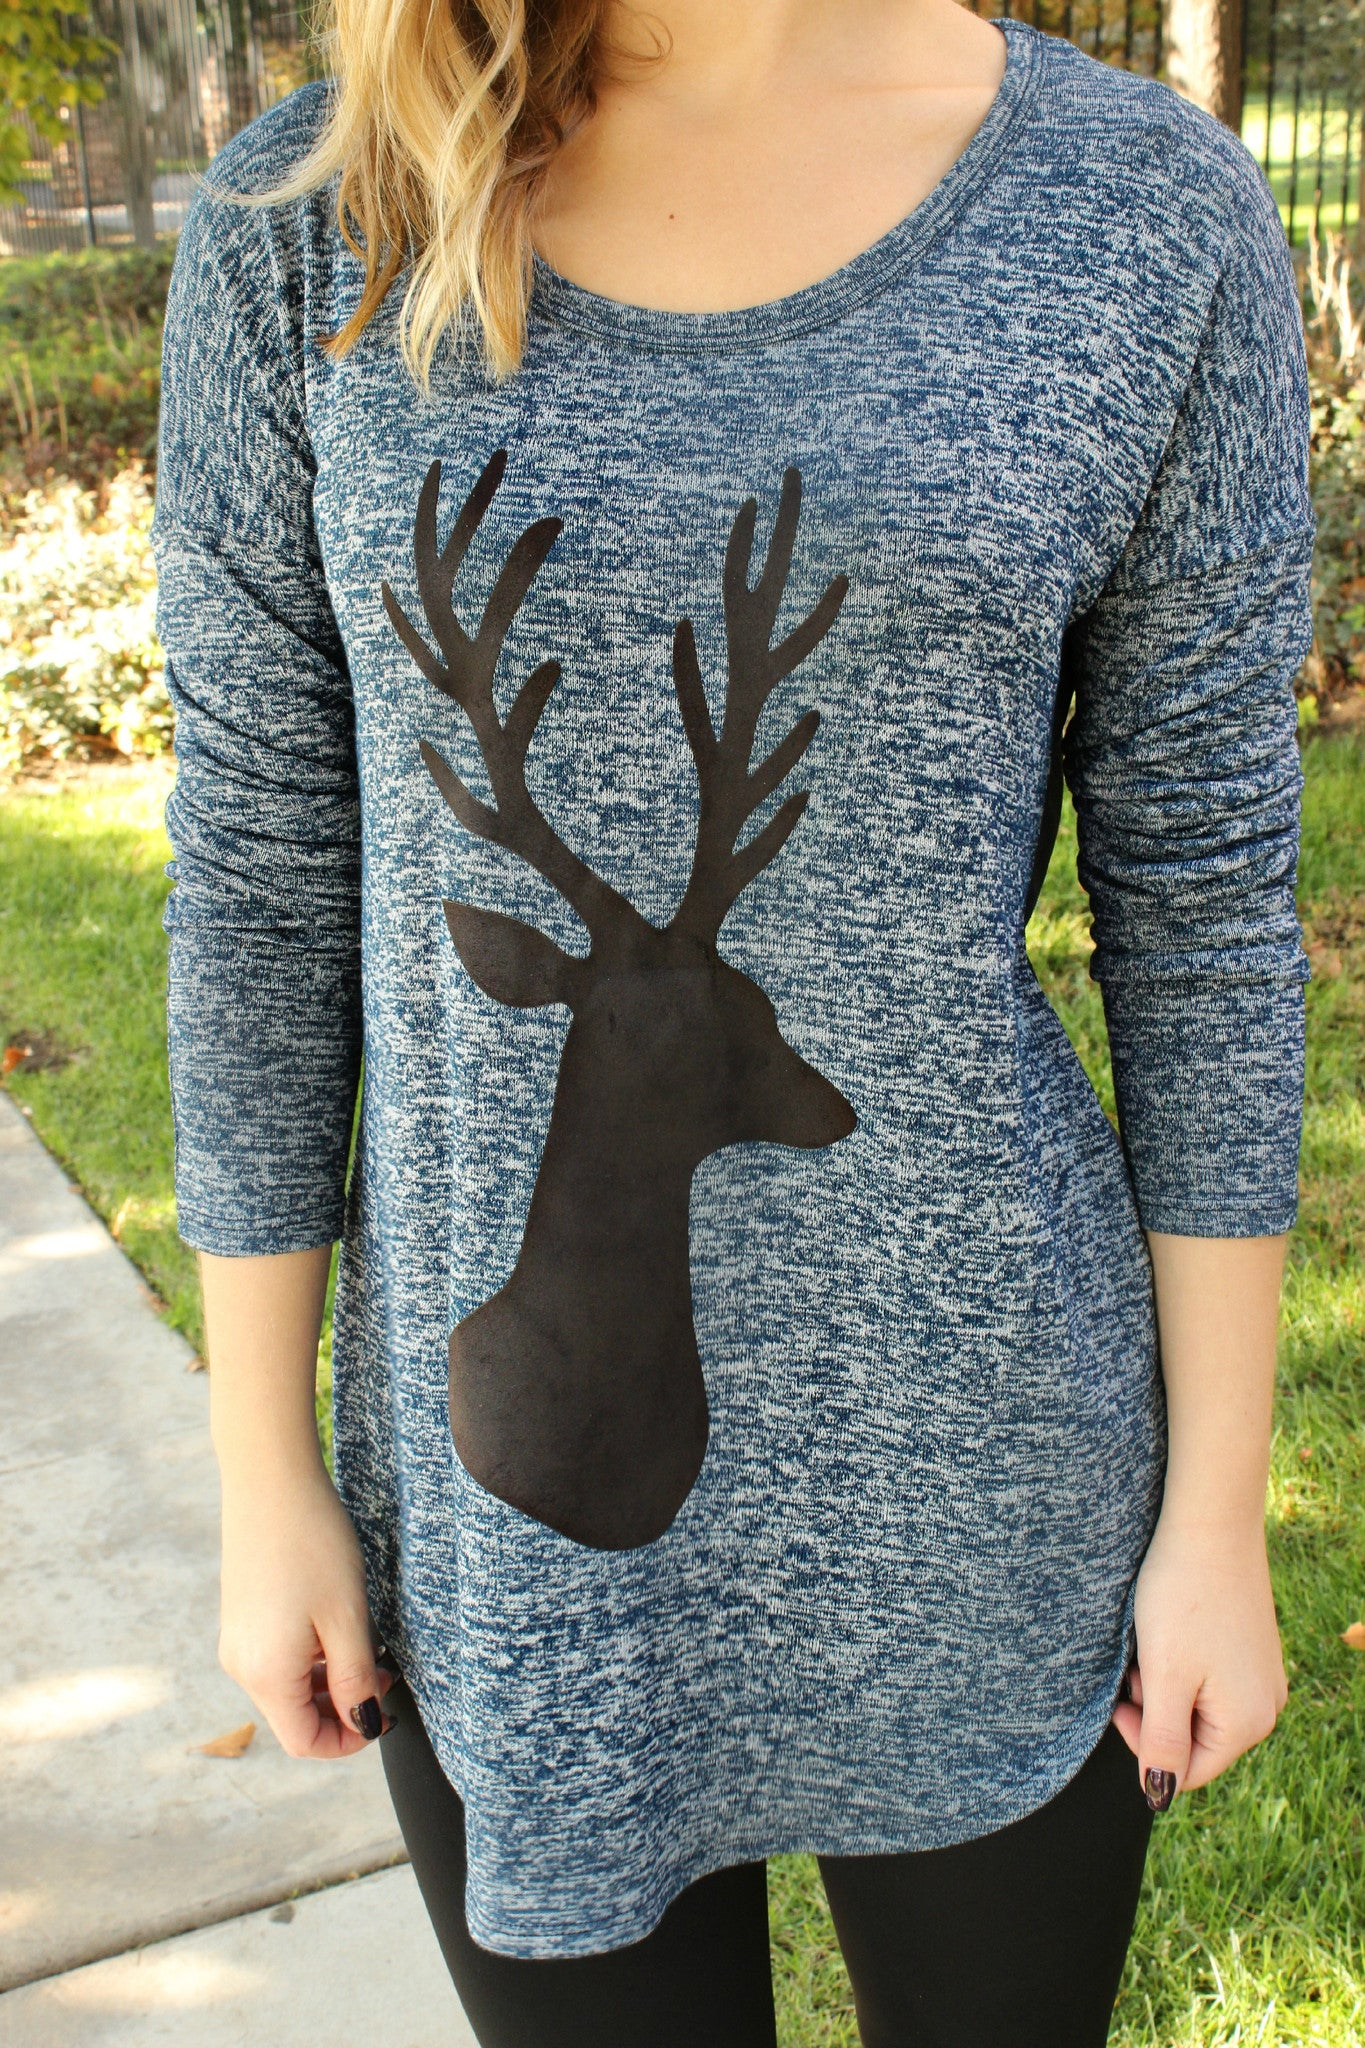 Head Hunter Sweater - Leah B. Boutique